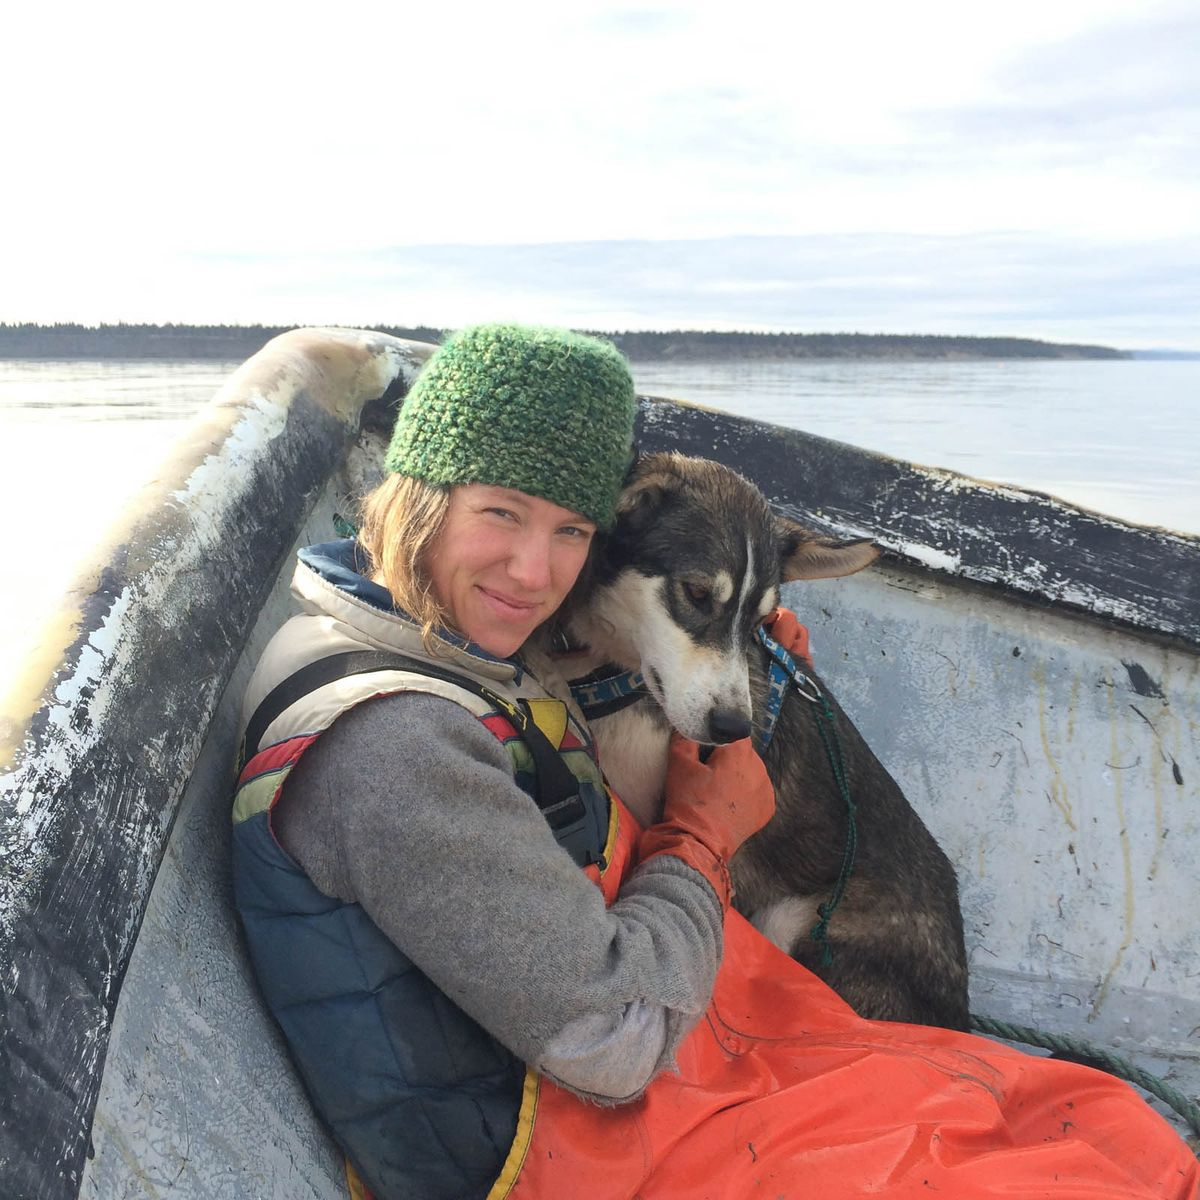 Kasilof-based Iditarod musher Monica Zappa cuddles with one of her lead sled dogs, Dweezil, during fishing season. She and longtime musher Tim Osmar fish a setnet site in Cook Inlet. (Monica Zappa photo)